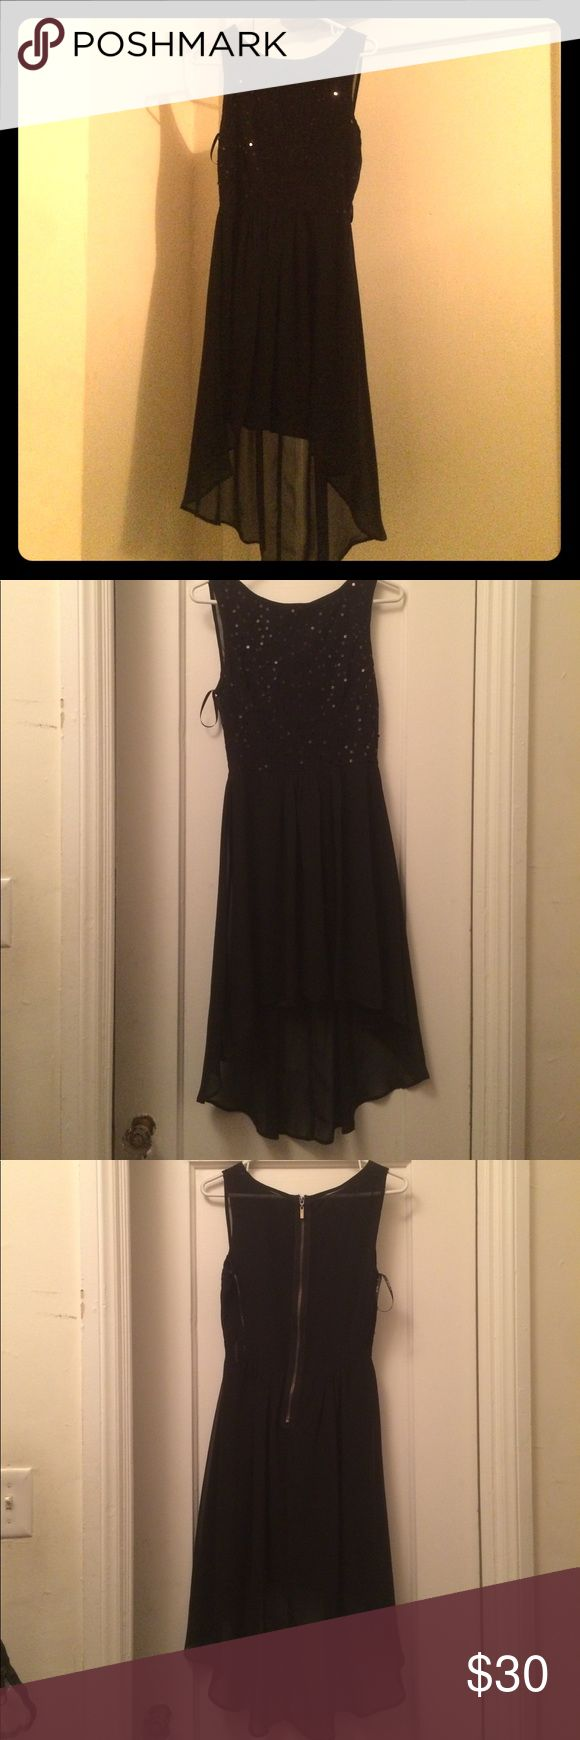 Black Sparkly Dress This is a beautiful well kept black dress. Can wear to any formal event or just a day at the beach. The size is a 9/10 B Darlin Dresses